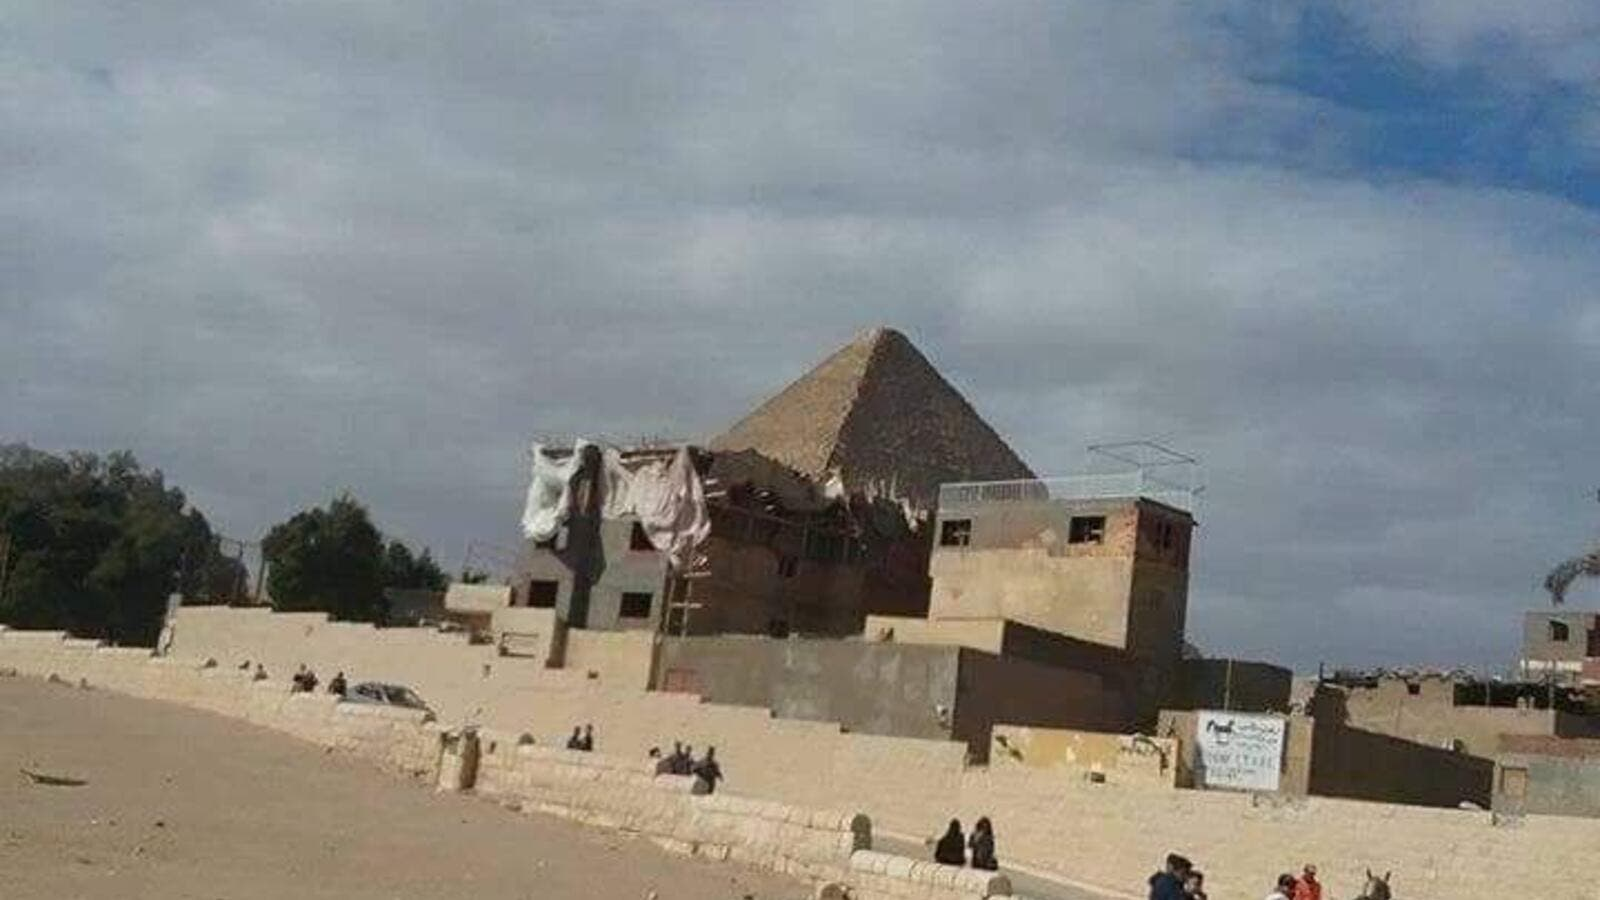 An illegal hotel near the Giza pyramids. (Twitter)